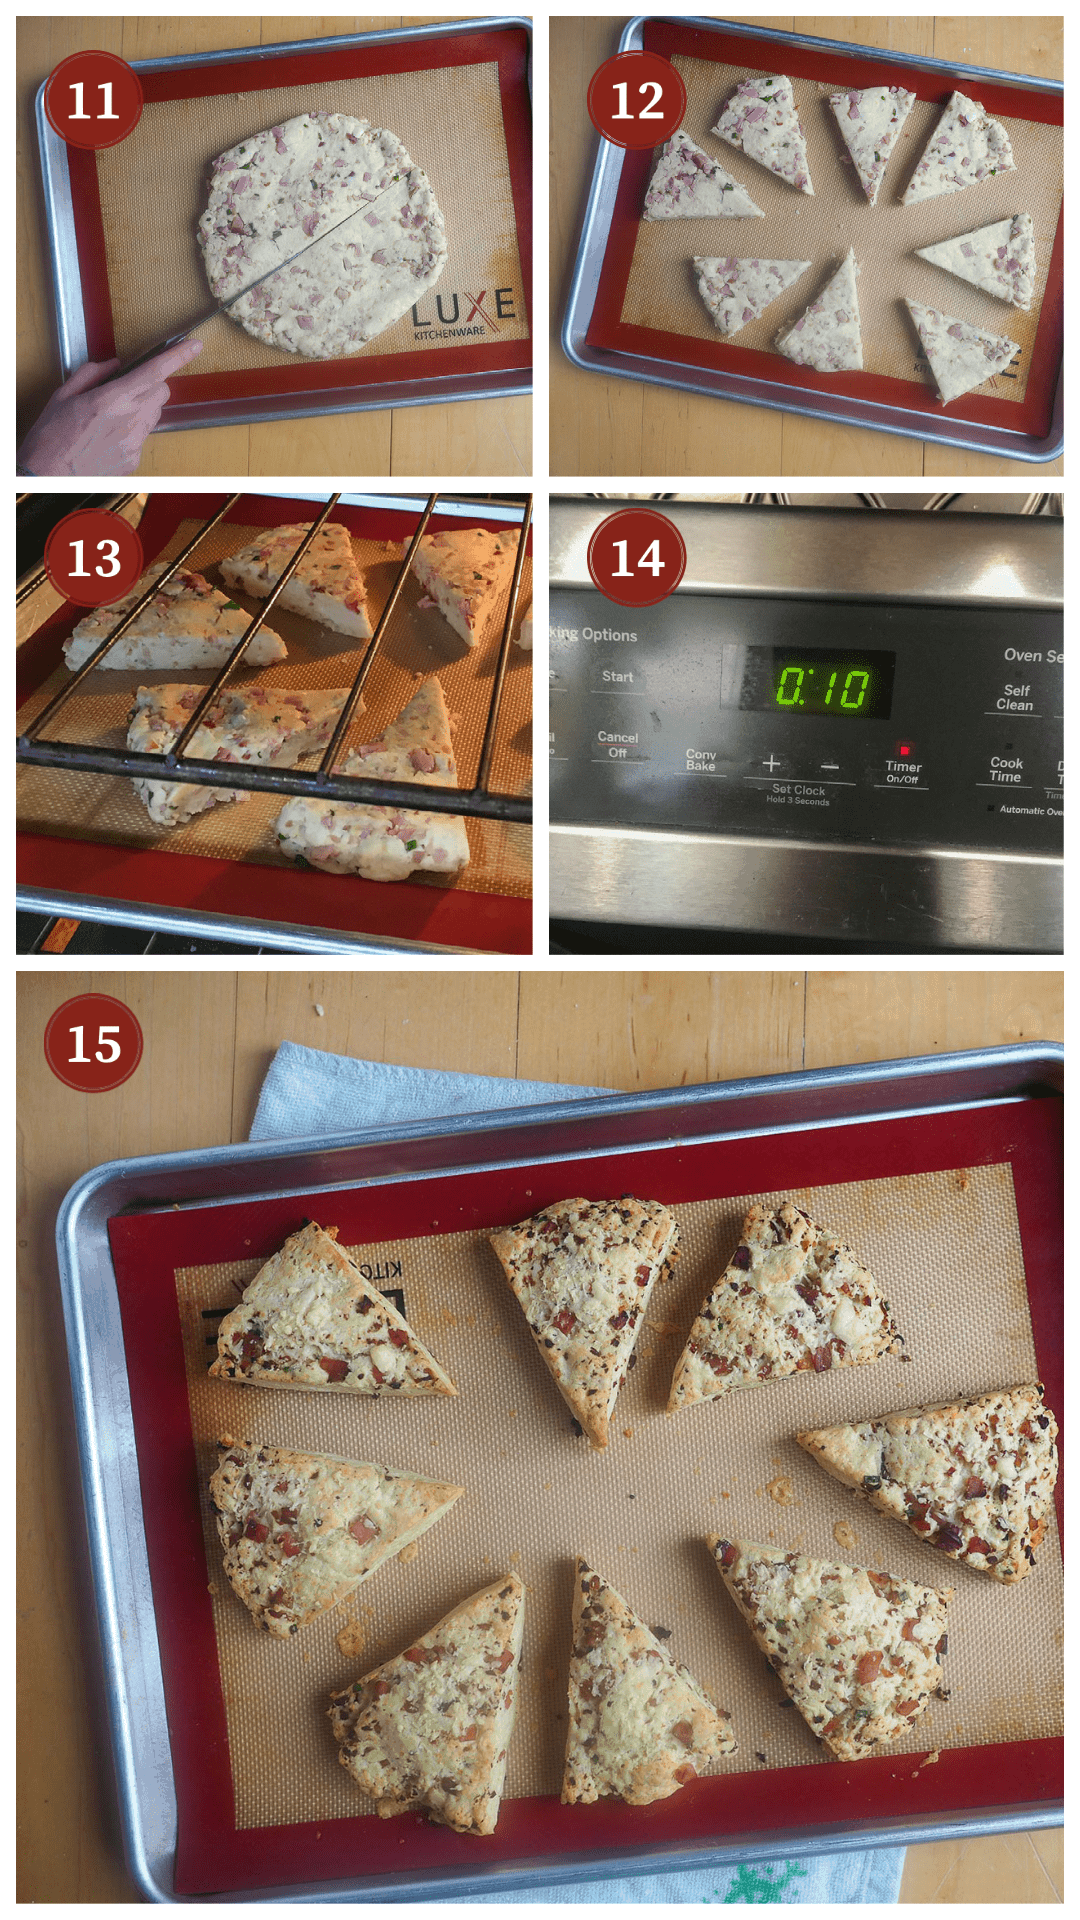 A collage of images showing how to make ham and cheese scones, steps 11 - 15.